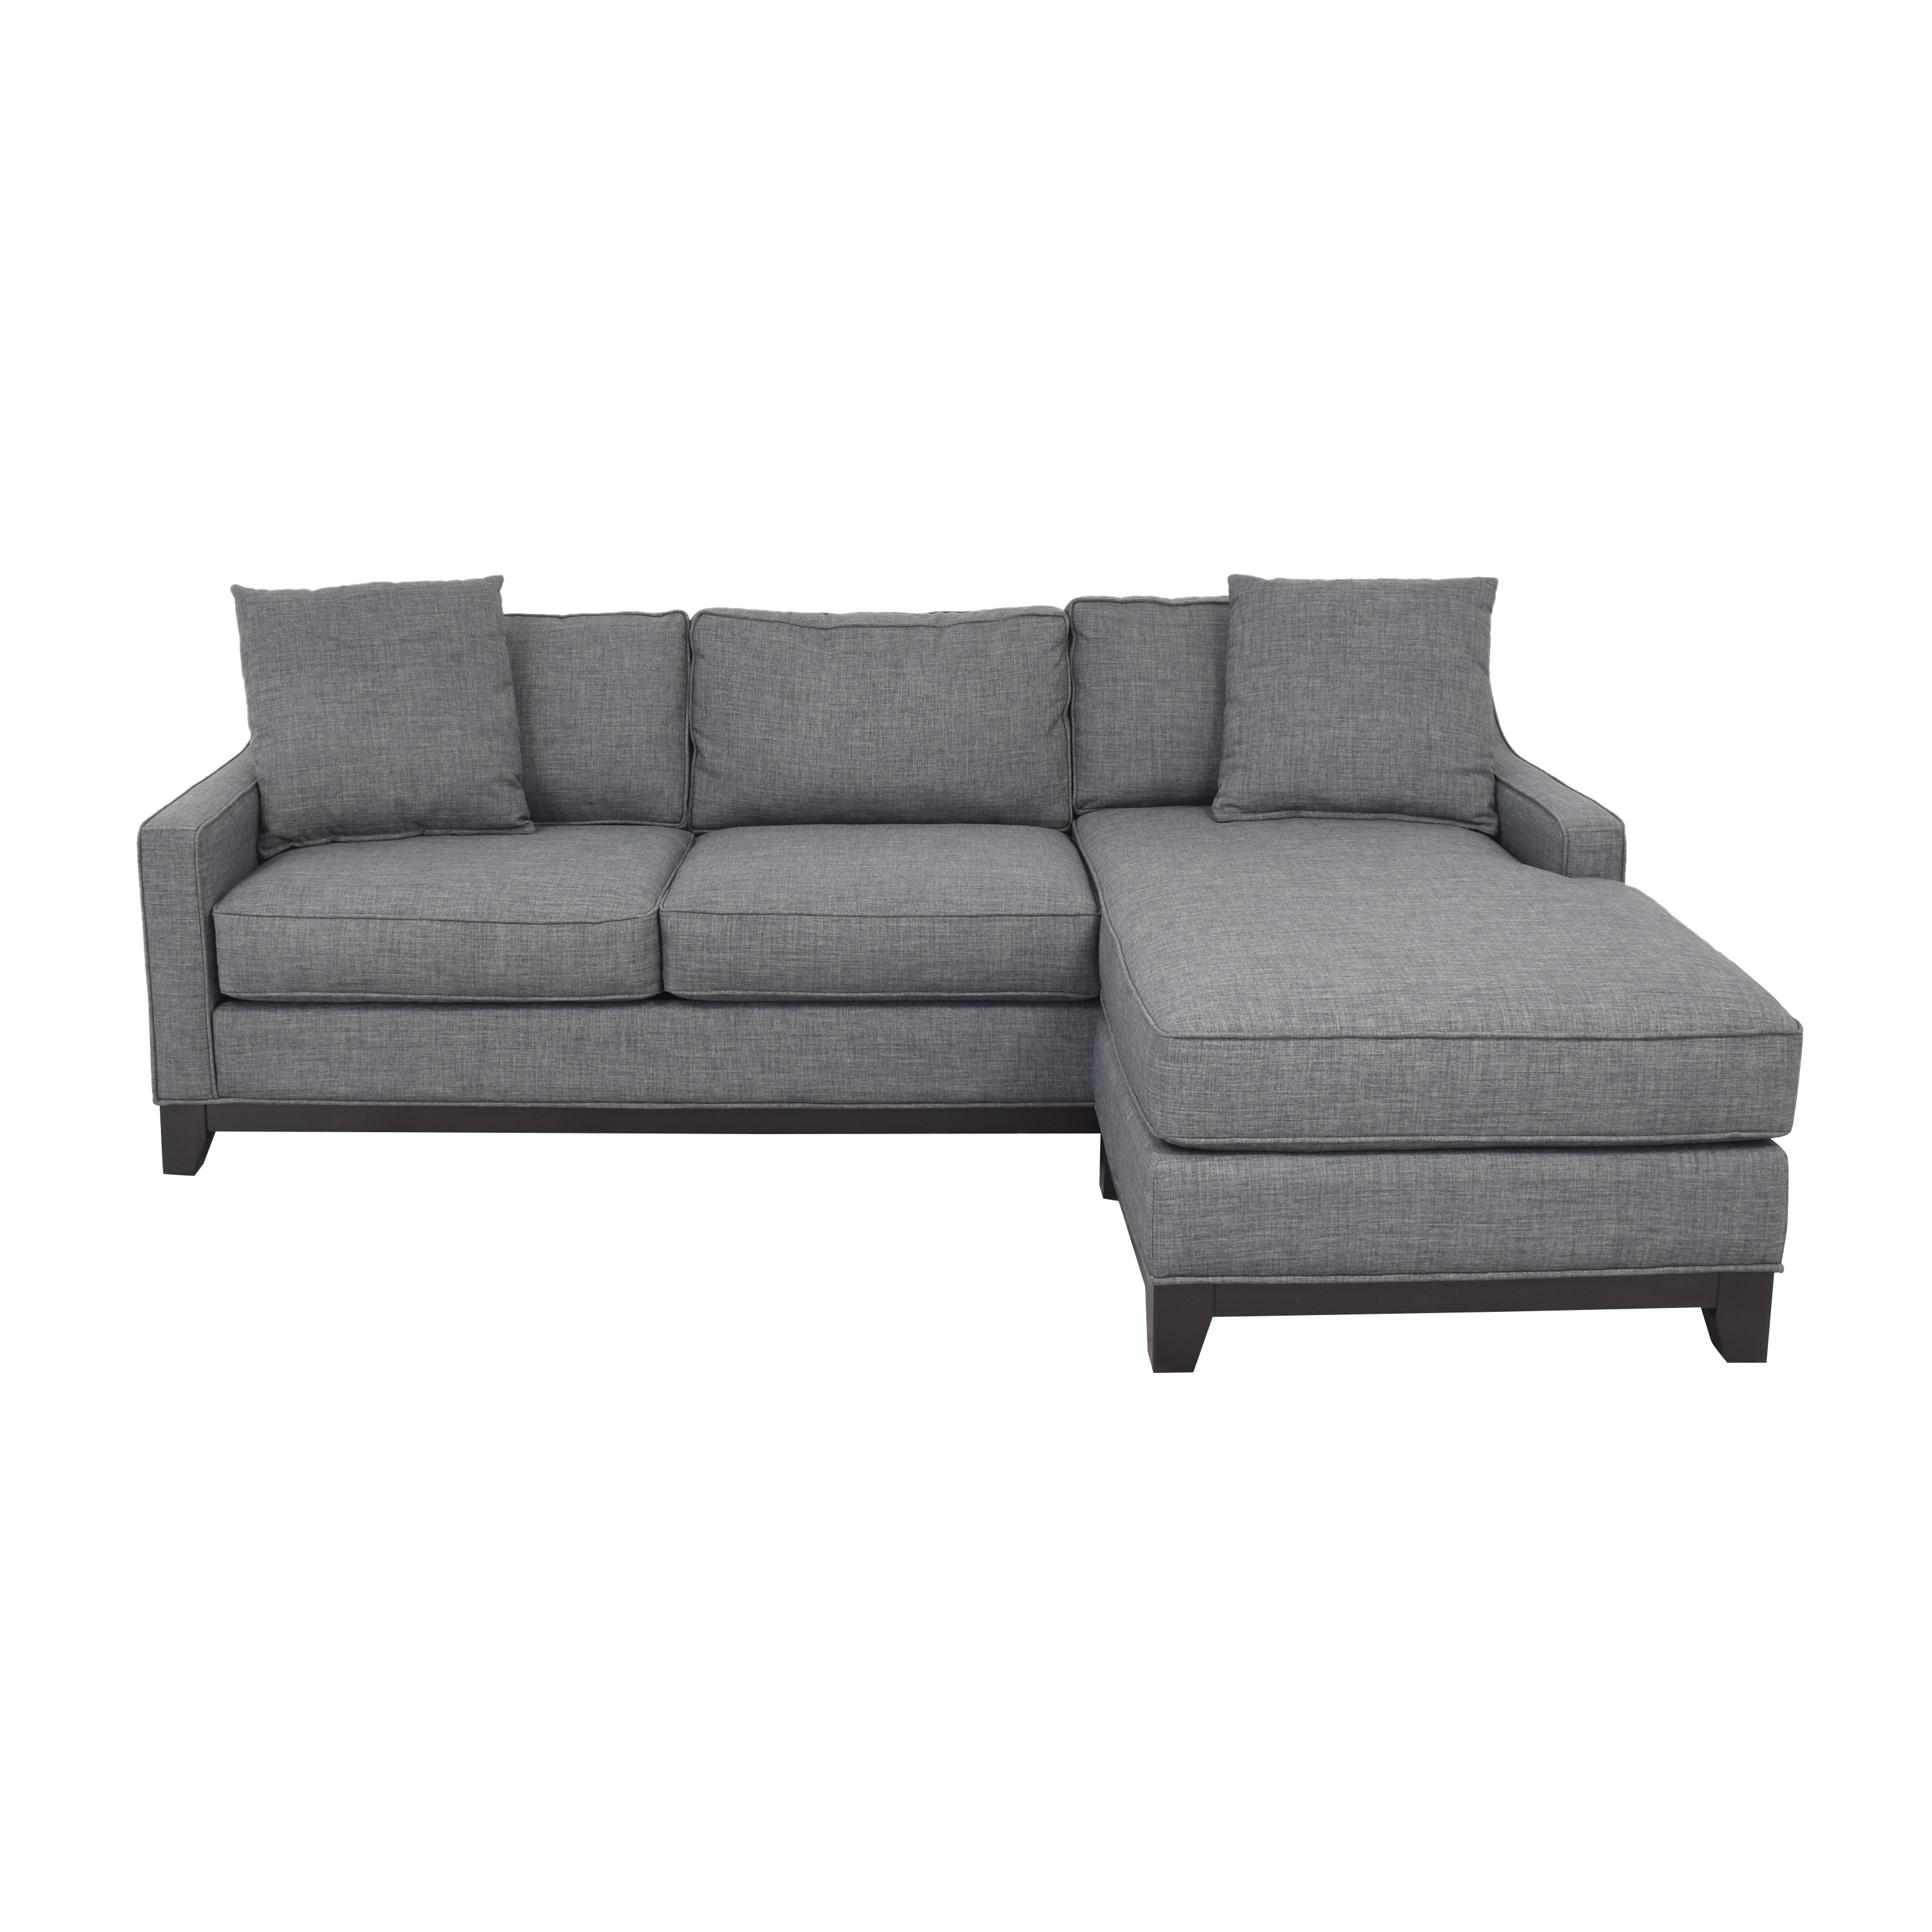 26 off macy s macy s keegan 2 piece fabric reversible chaise sectional sofa sofas